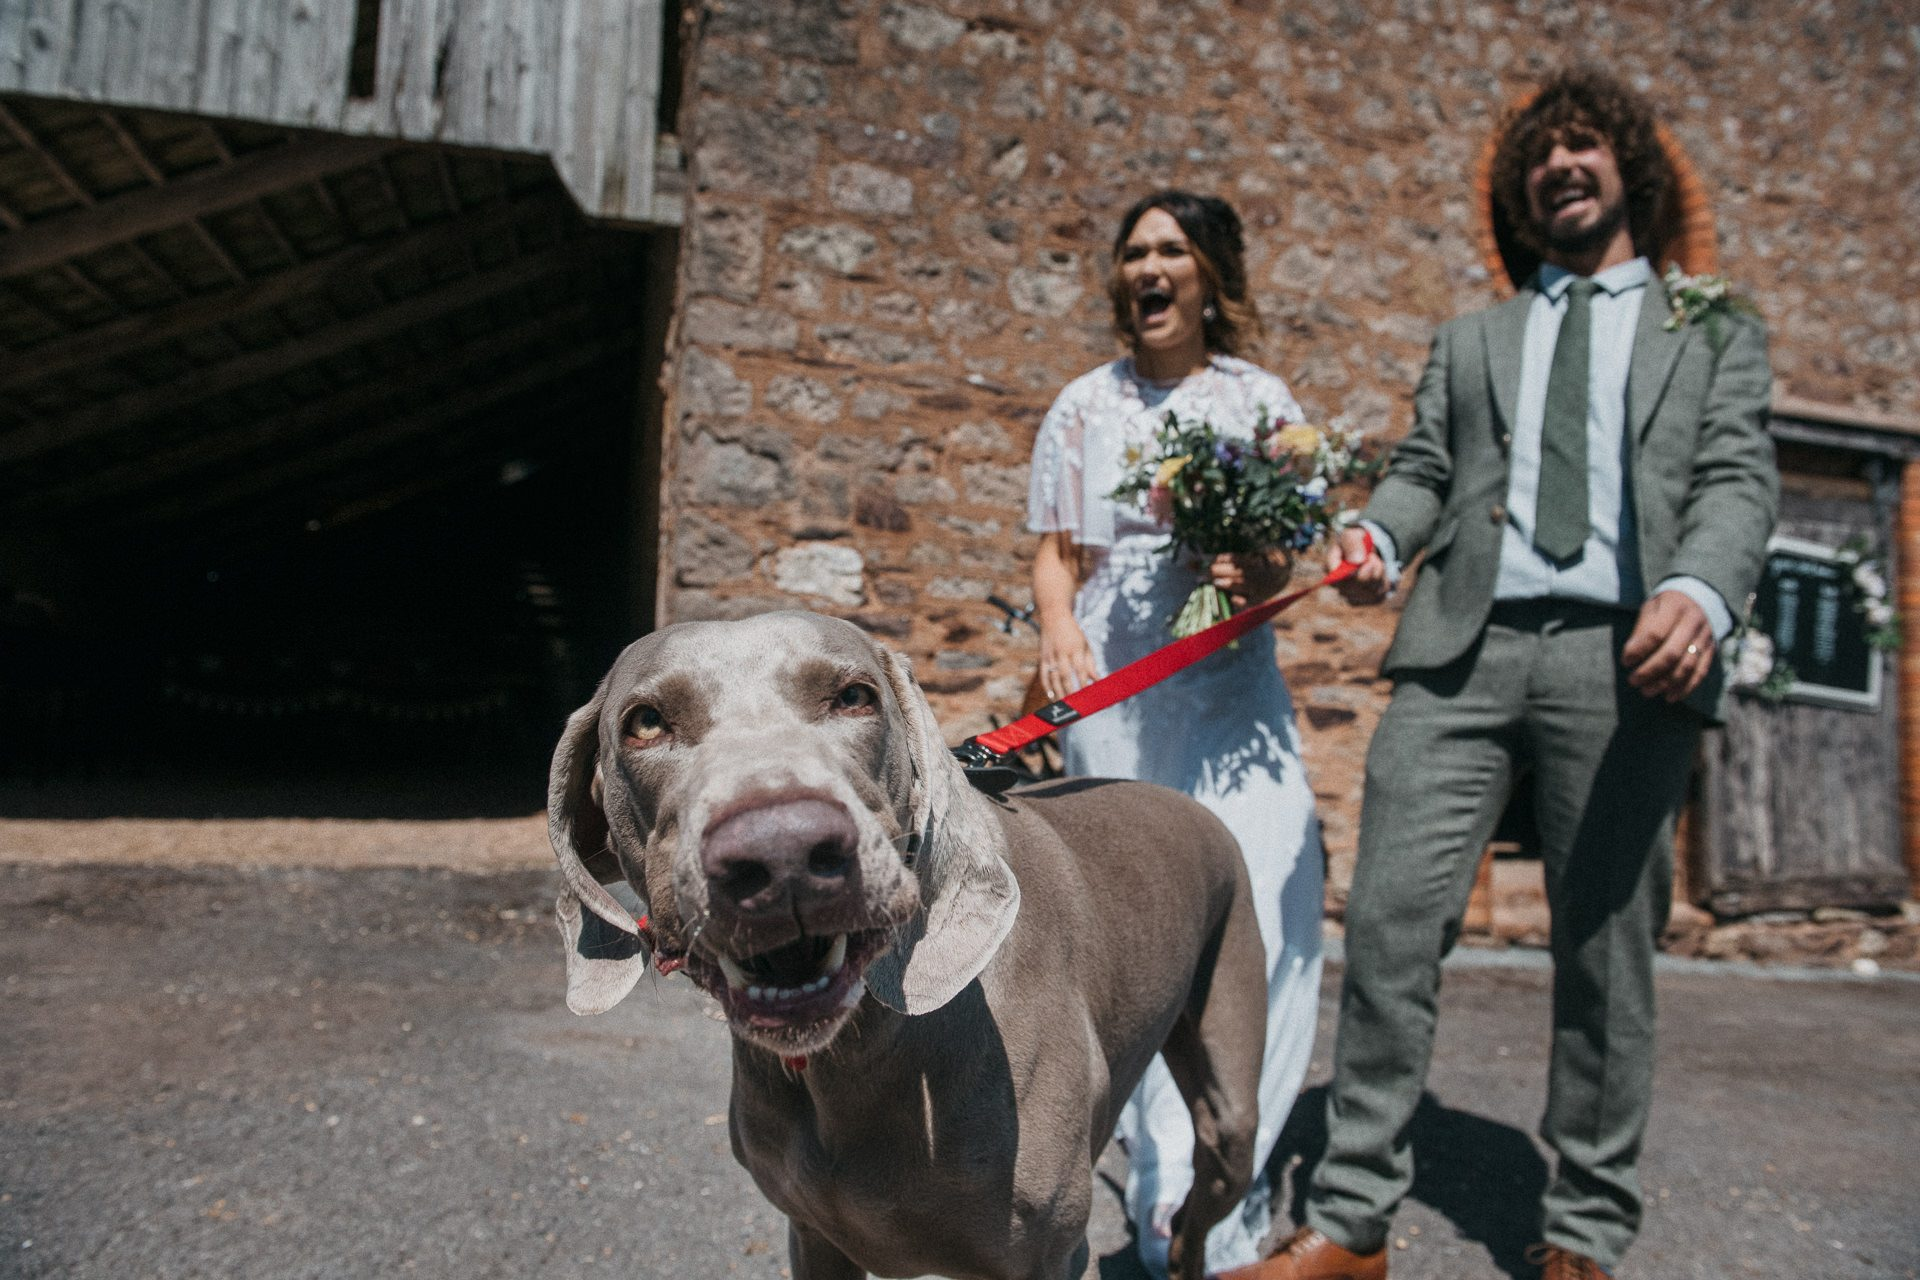 0041-DEVON-SOMERSET-WEDDING-PHOTOGRAPHER-0164-BEST-OF-2019-LOUISE-MAY-DEVON-SOMERSET-WEDDING-PHOTOGRAPHY-LM2_1133